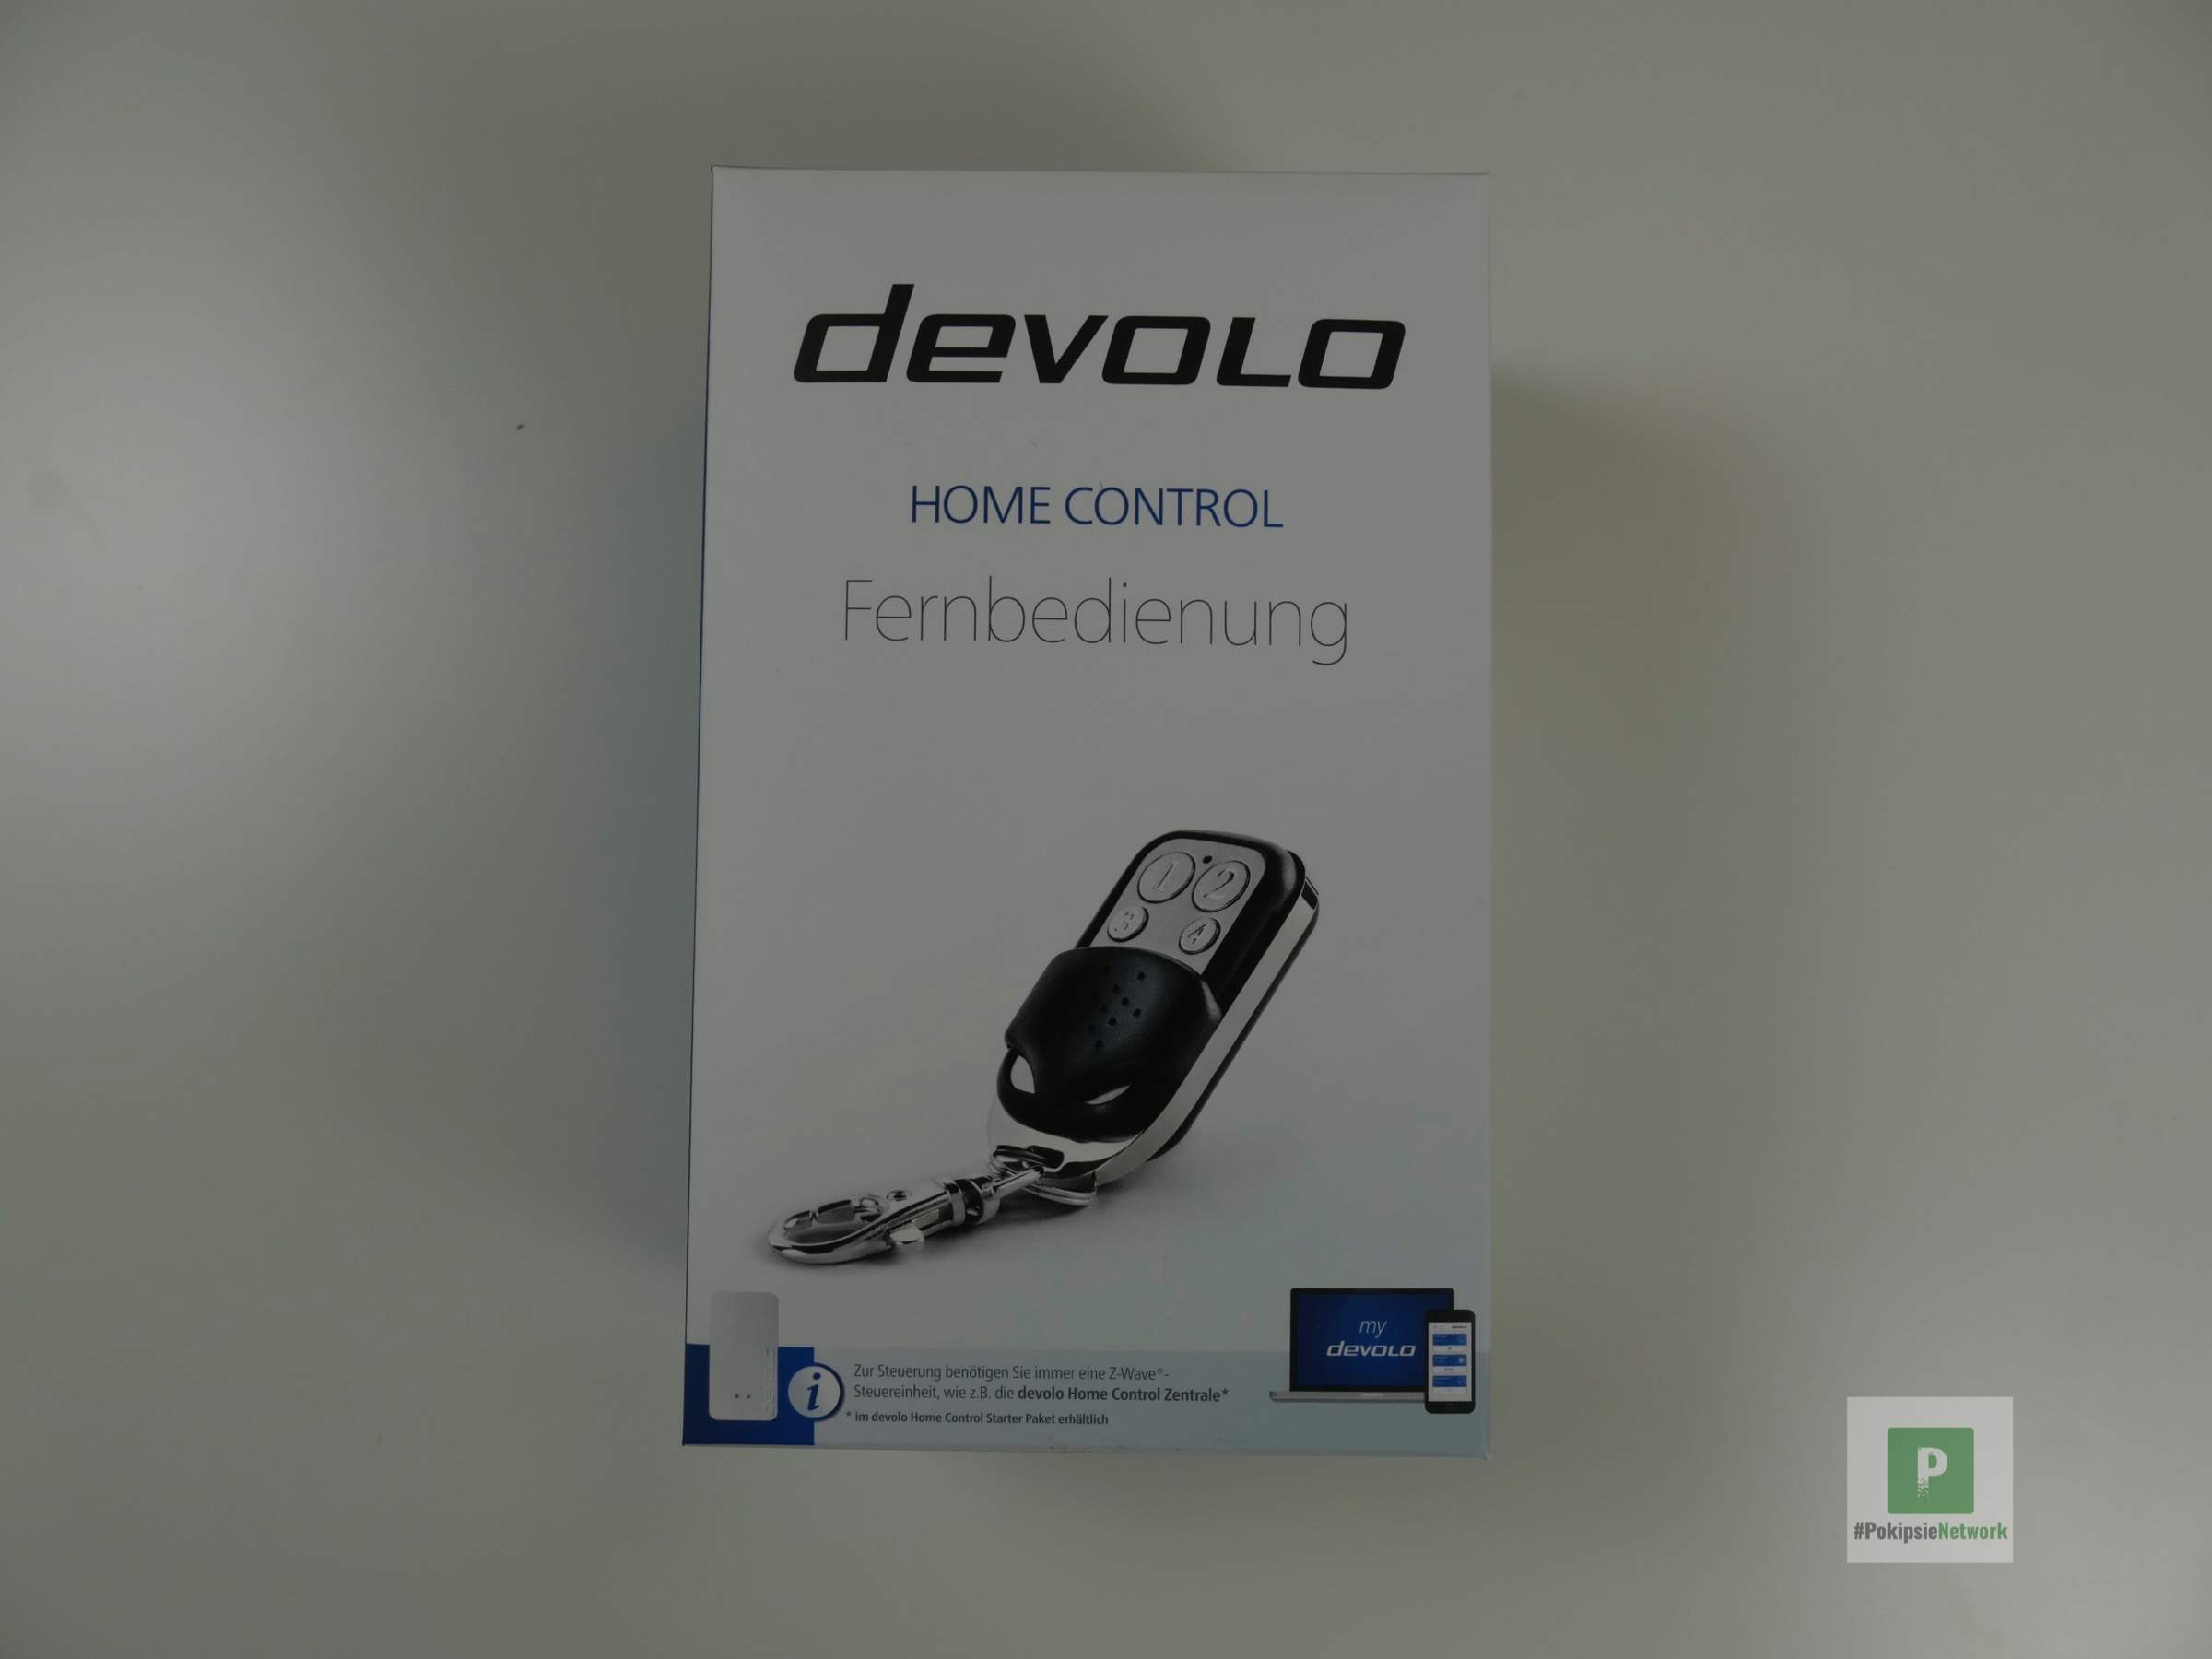 Devolo Home Control – Fernbedienung